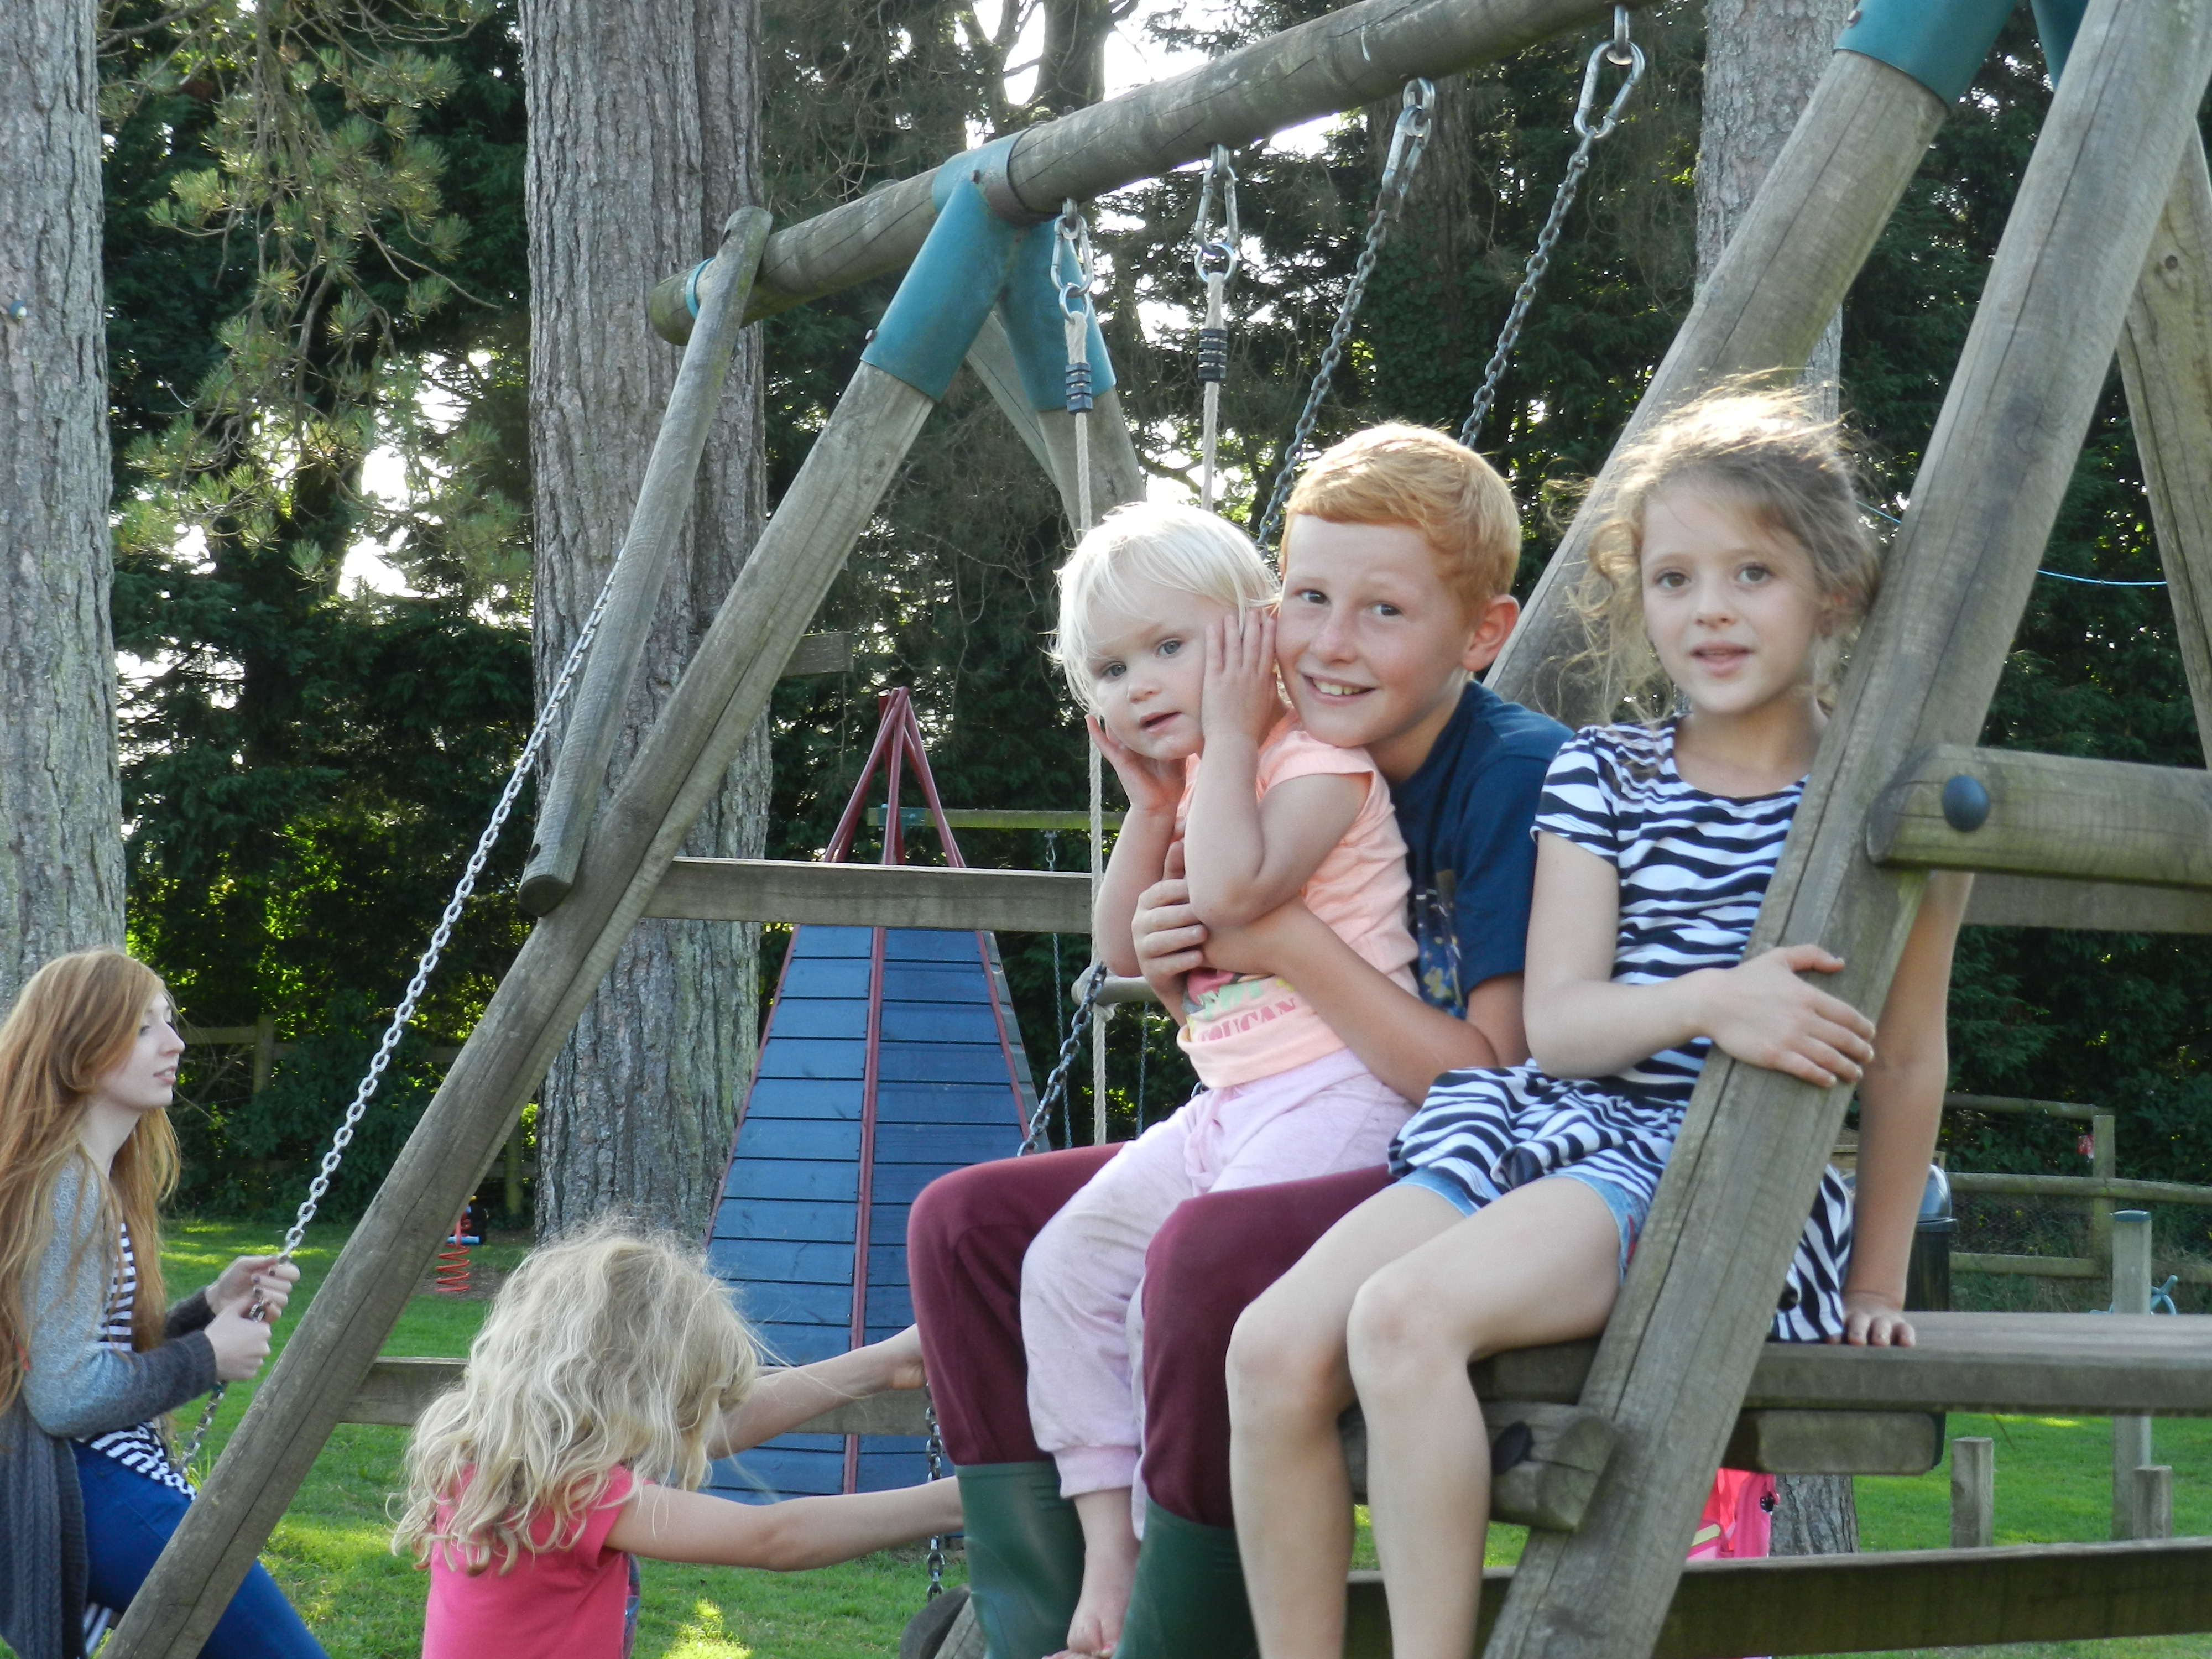 Fun in the play park